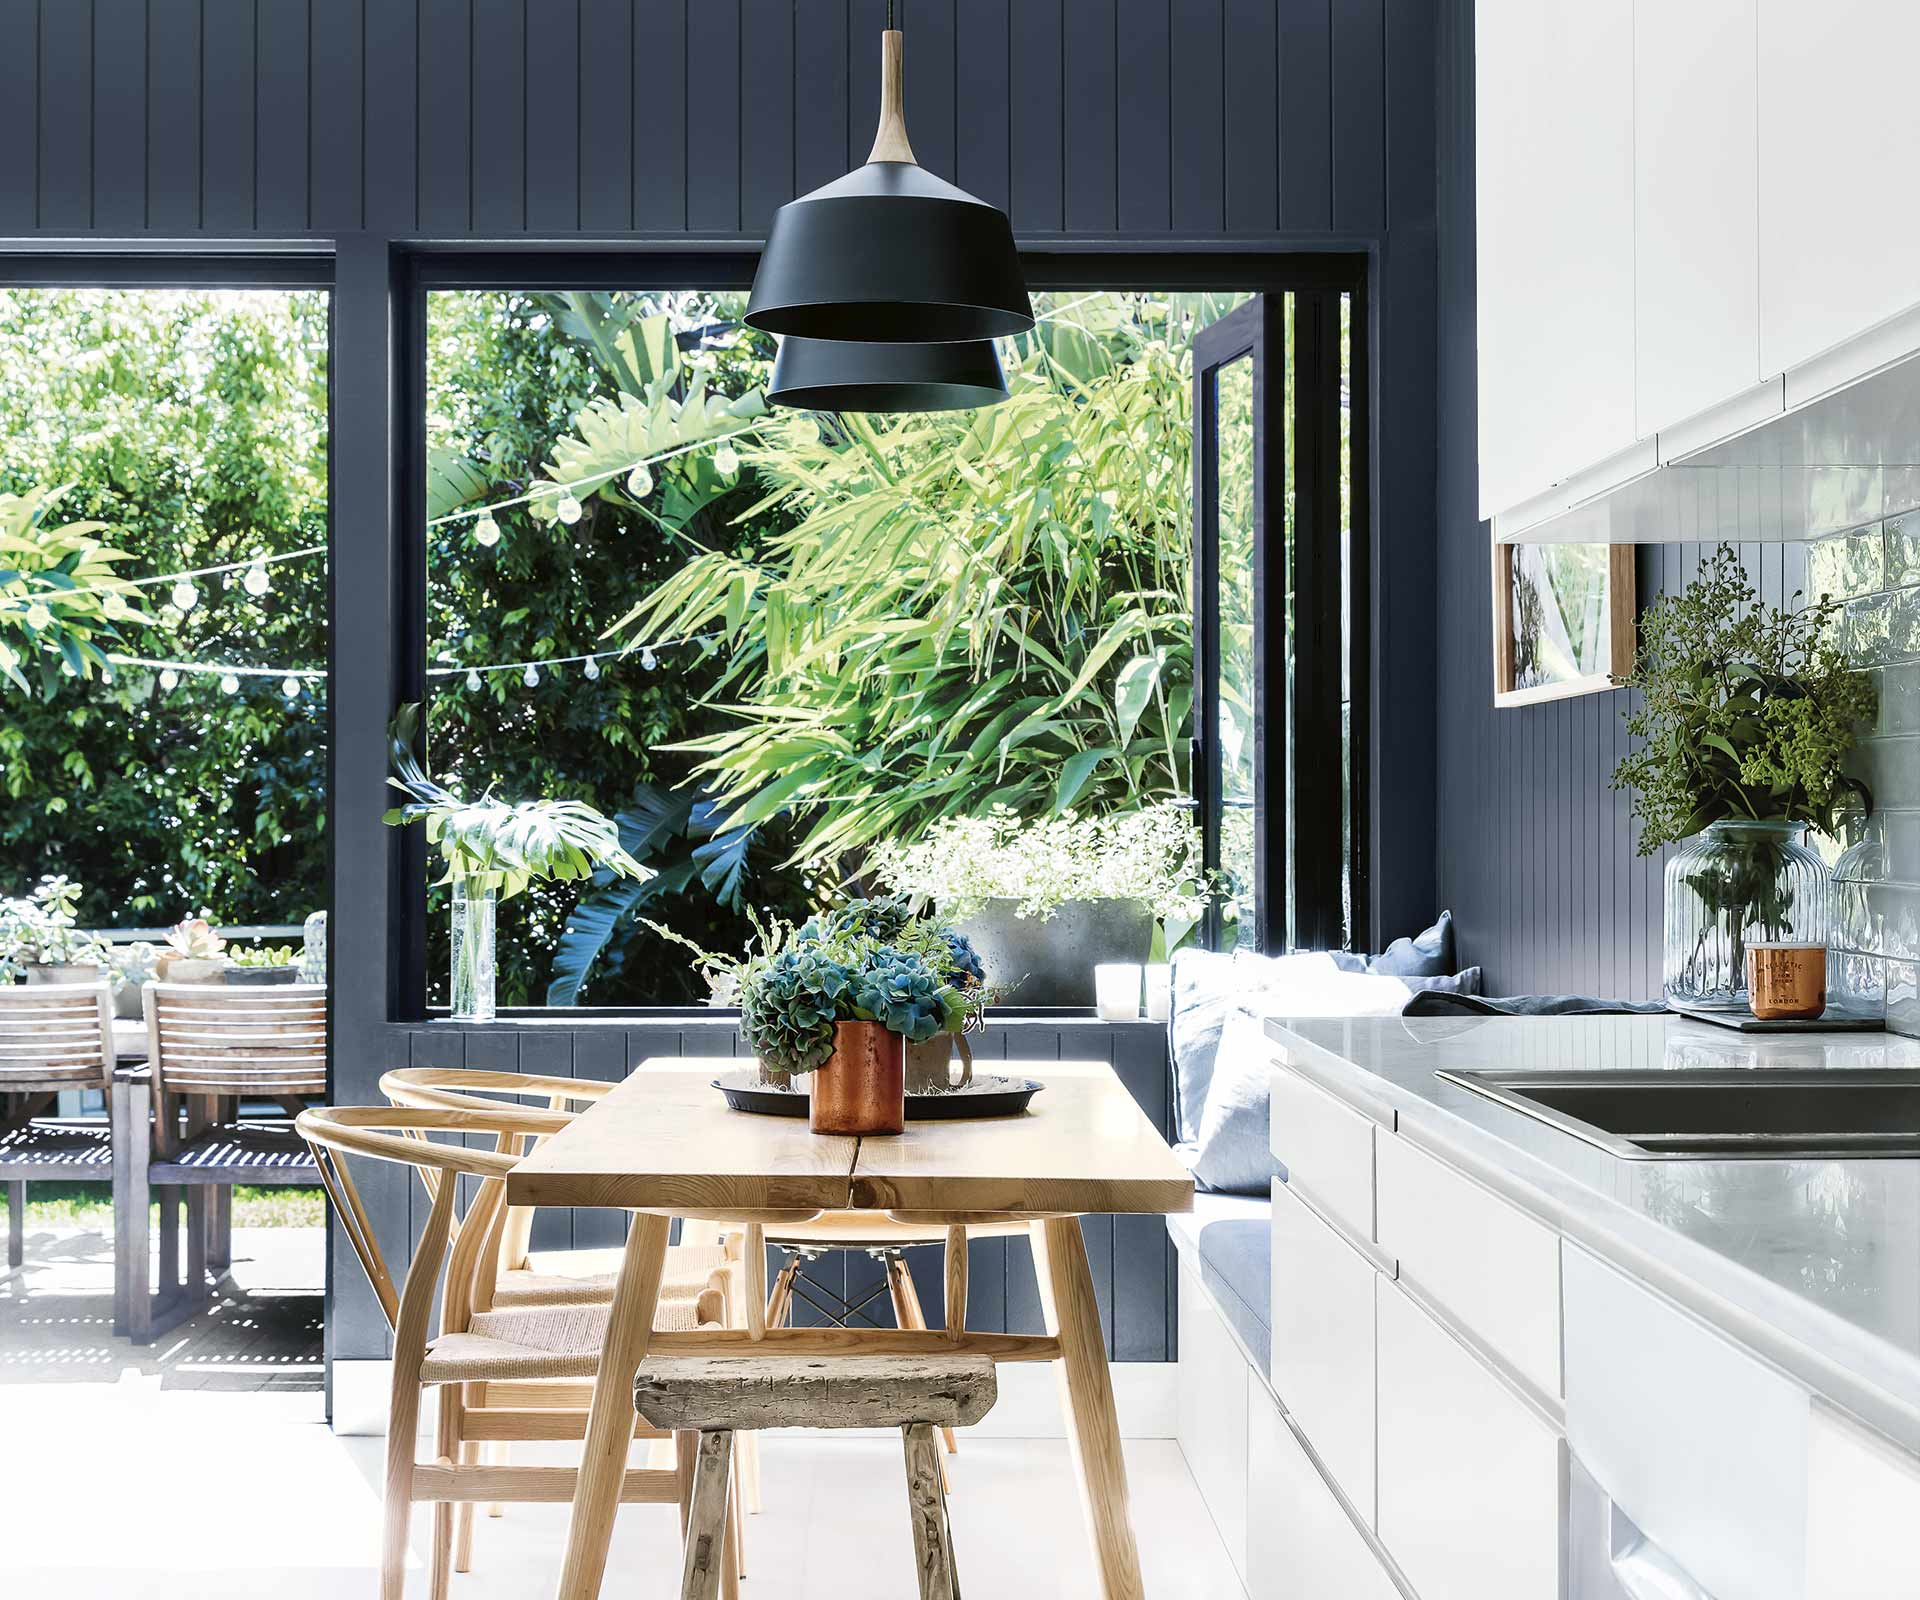 A beachy bohemian bungalow with indoor-outdoor living | Inside Out